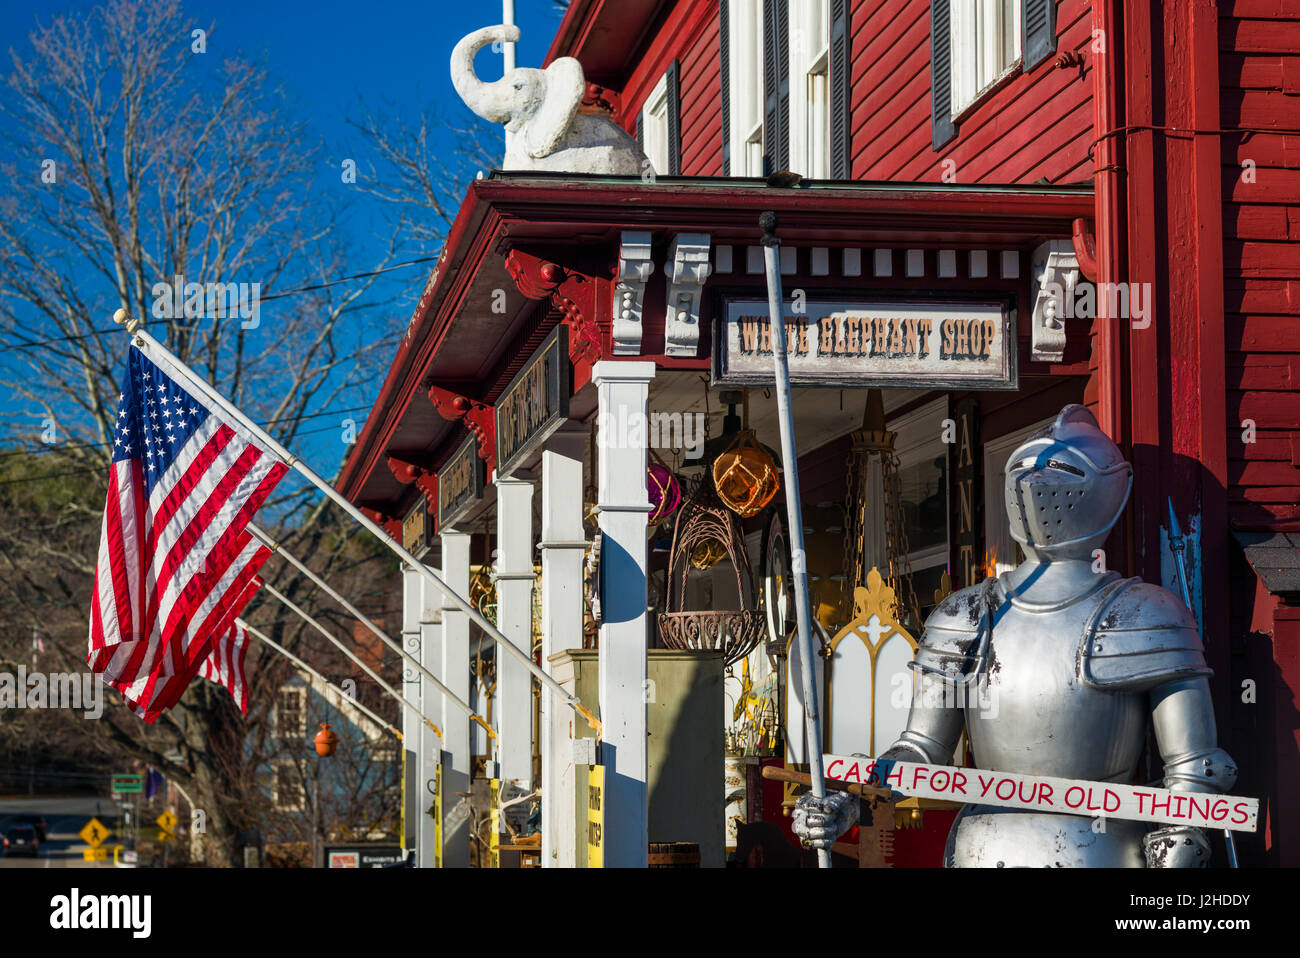 USA, Massachusetts, Essex, antique shop with suit of armor - Stock Image